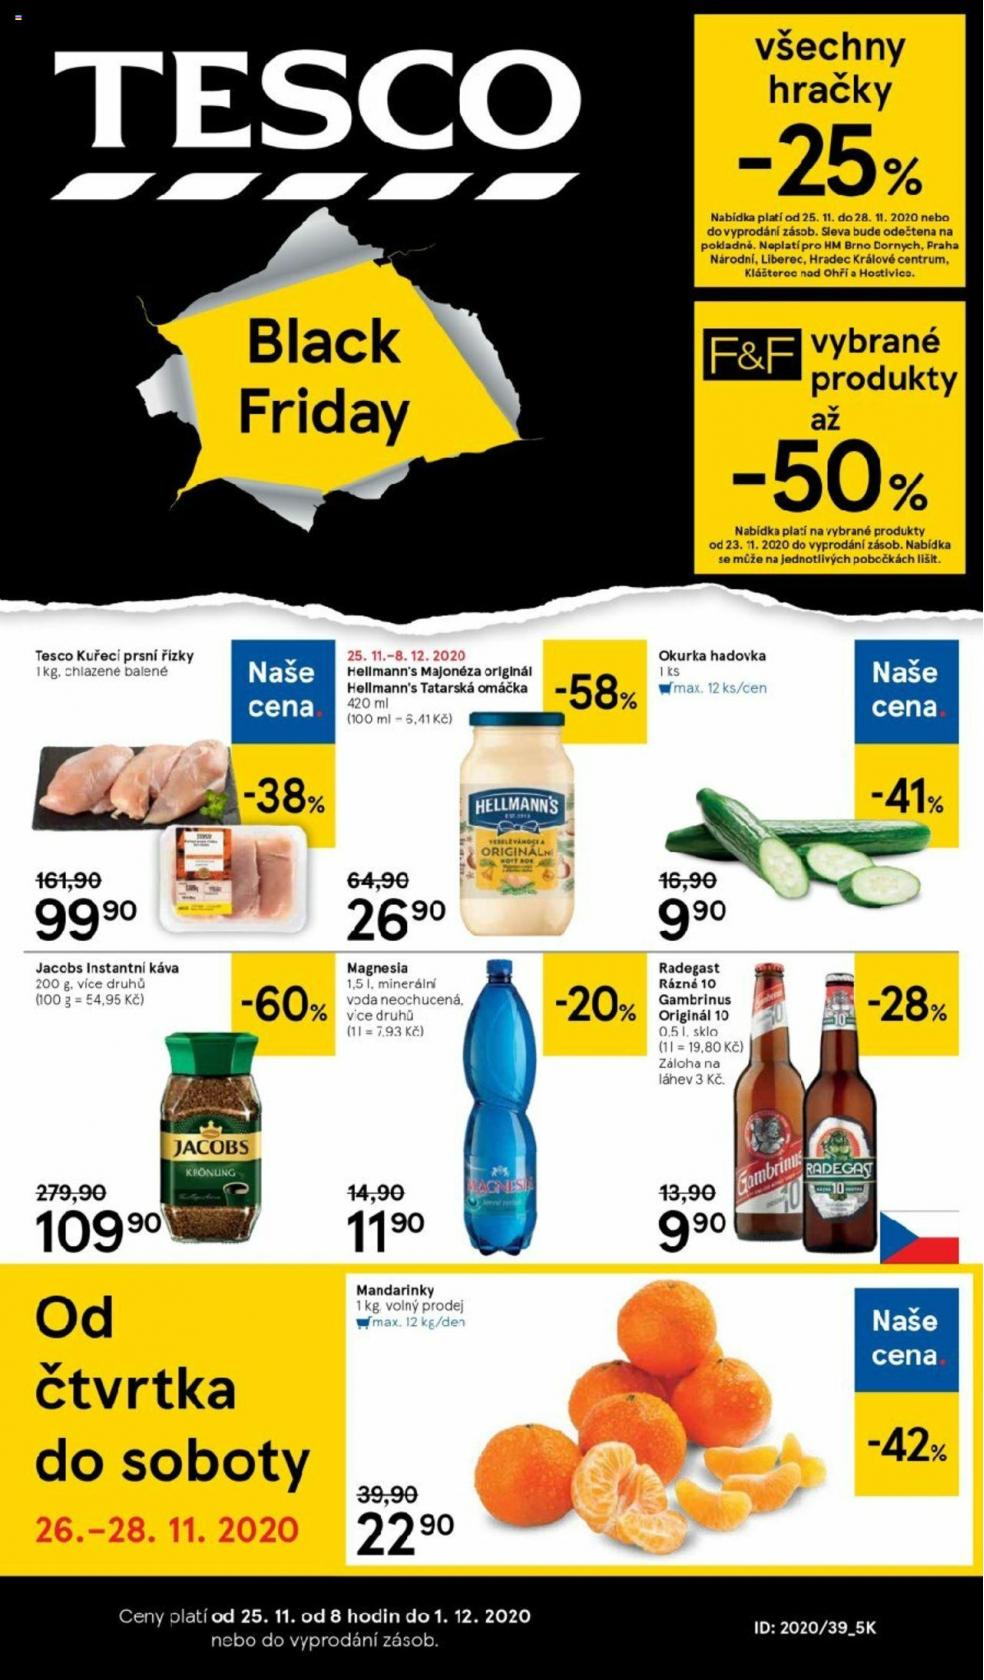 Tesco Hypermarket - Black Friday - #0